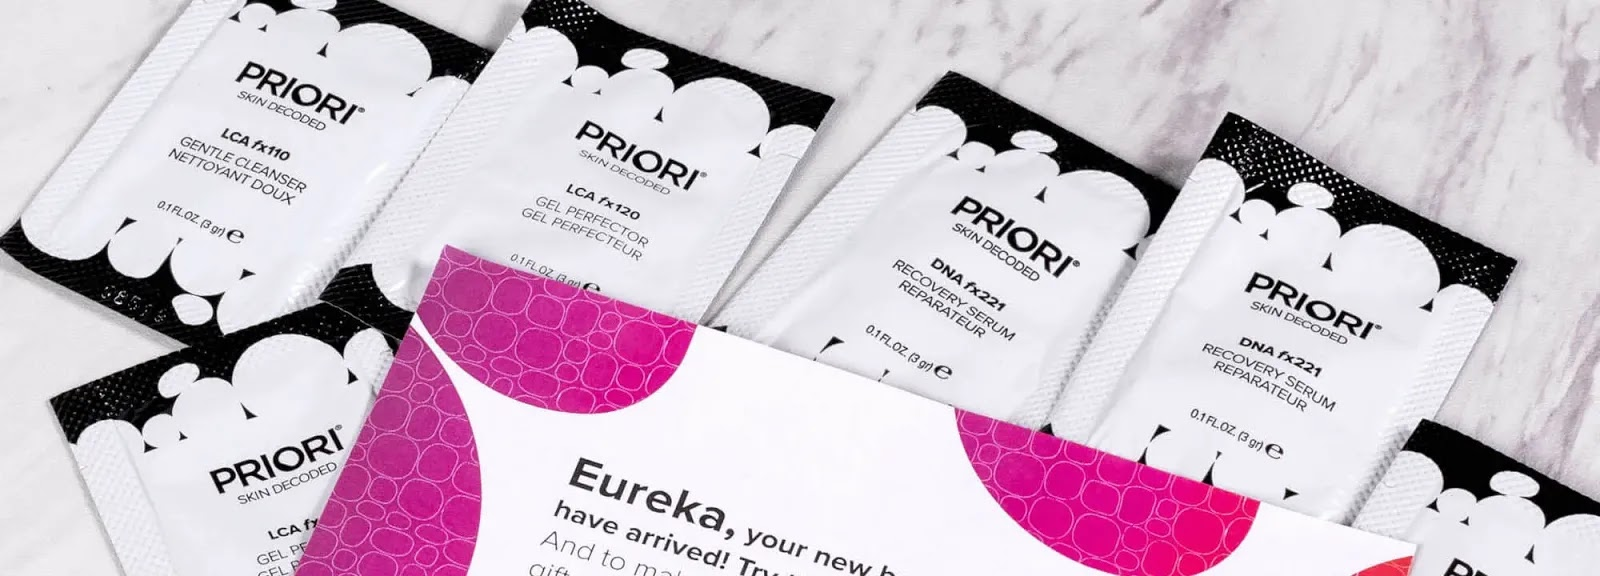 Millionaires Giving Money: Priori Skincare Samples Giveaway - Hurry